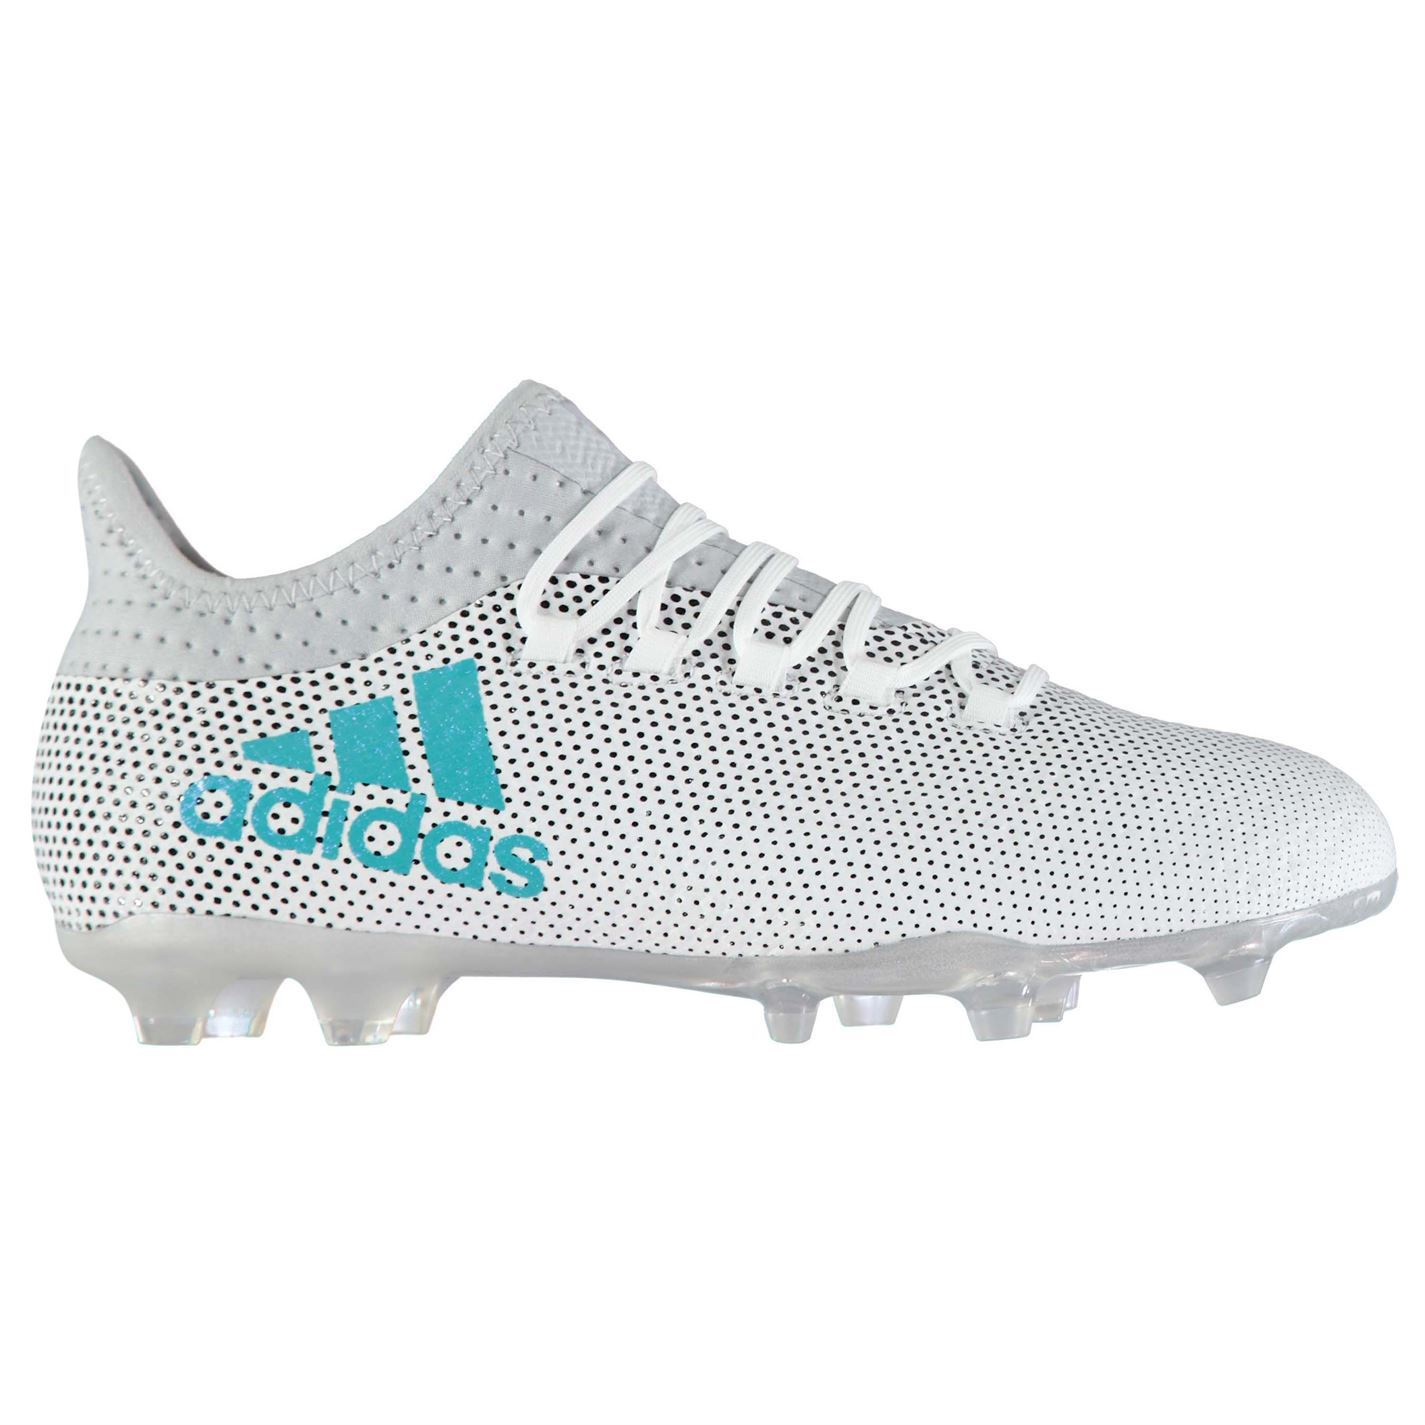 0bed2ea50763 adidas Mens X 17.2 FG Football Boots Shoes Studs Lace Up Ventilation Holes